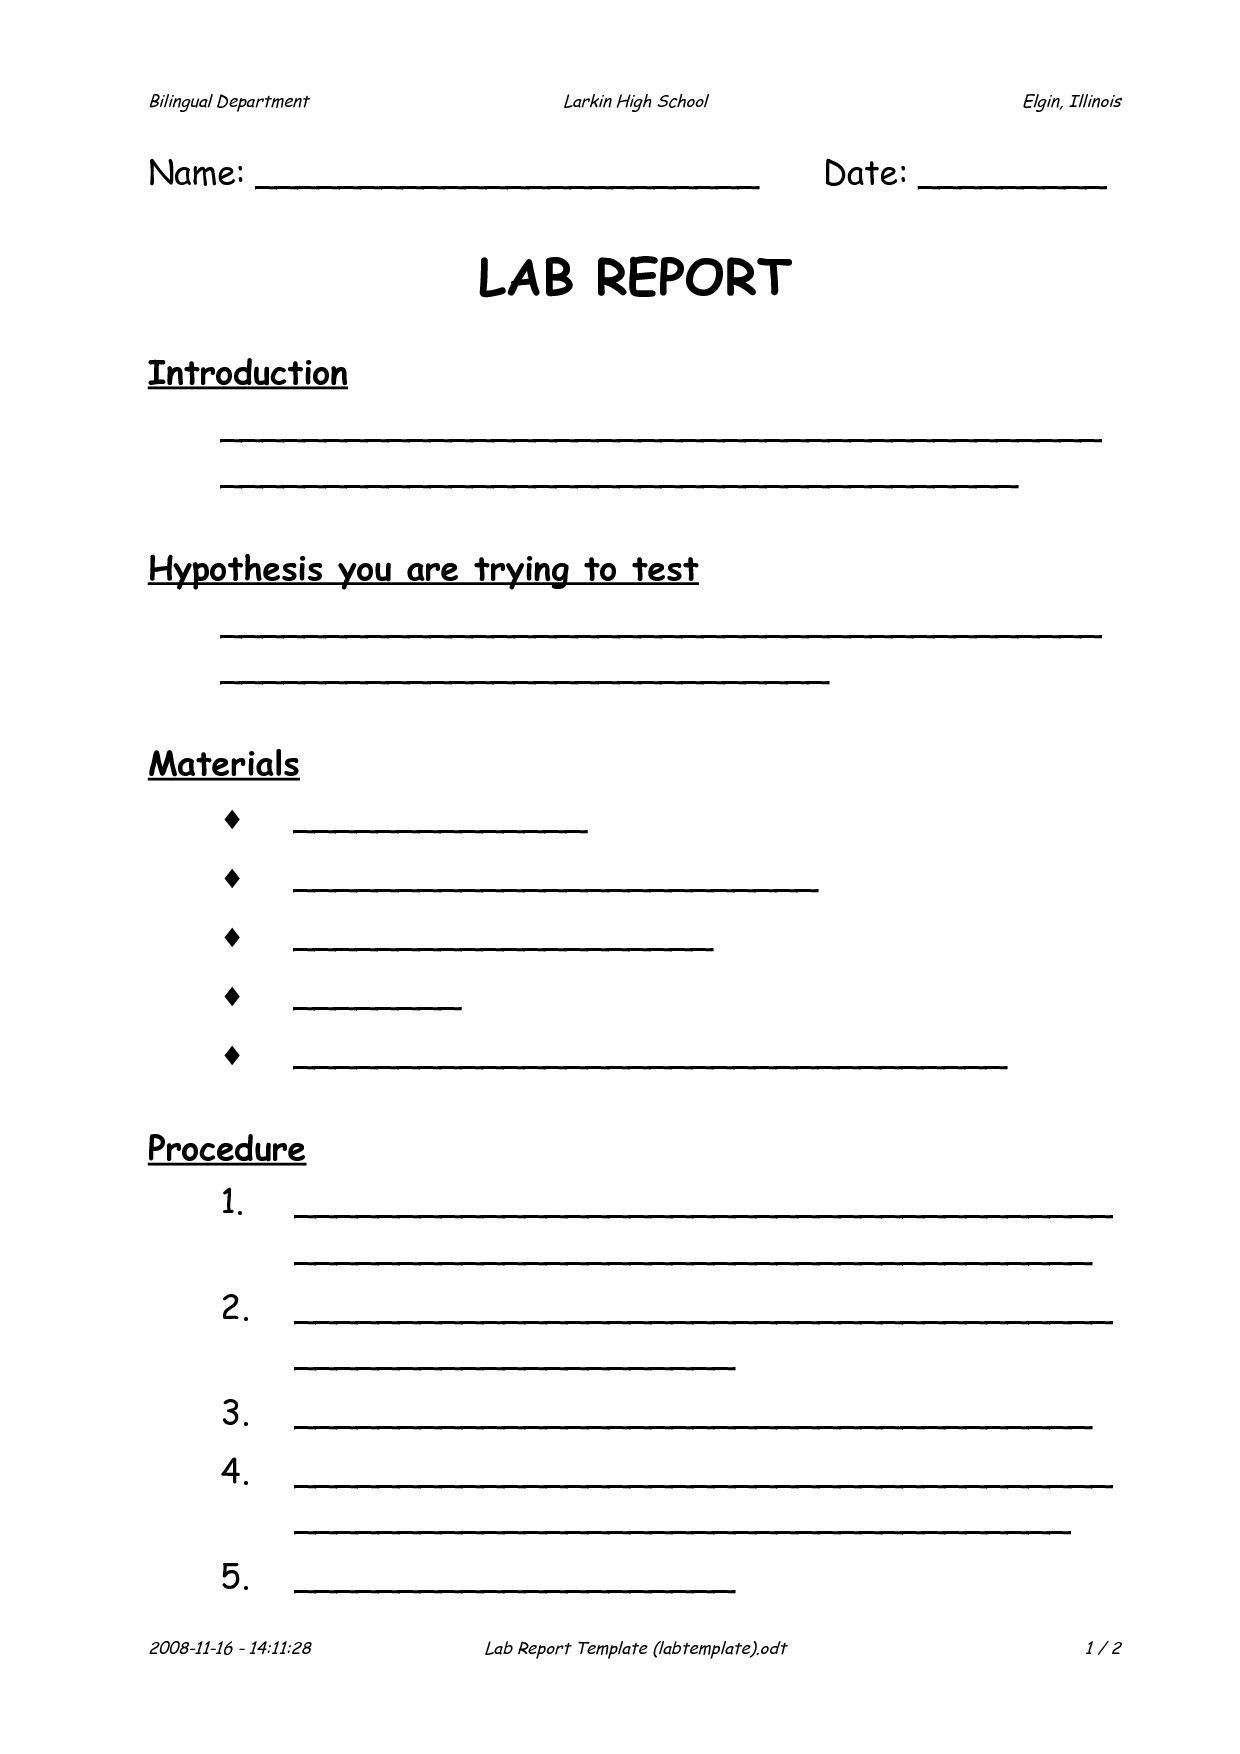 Scientific Method Worksheet High School Science Lab Report